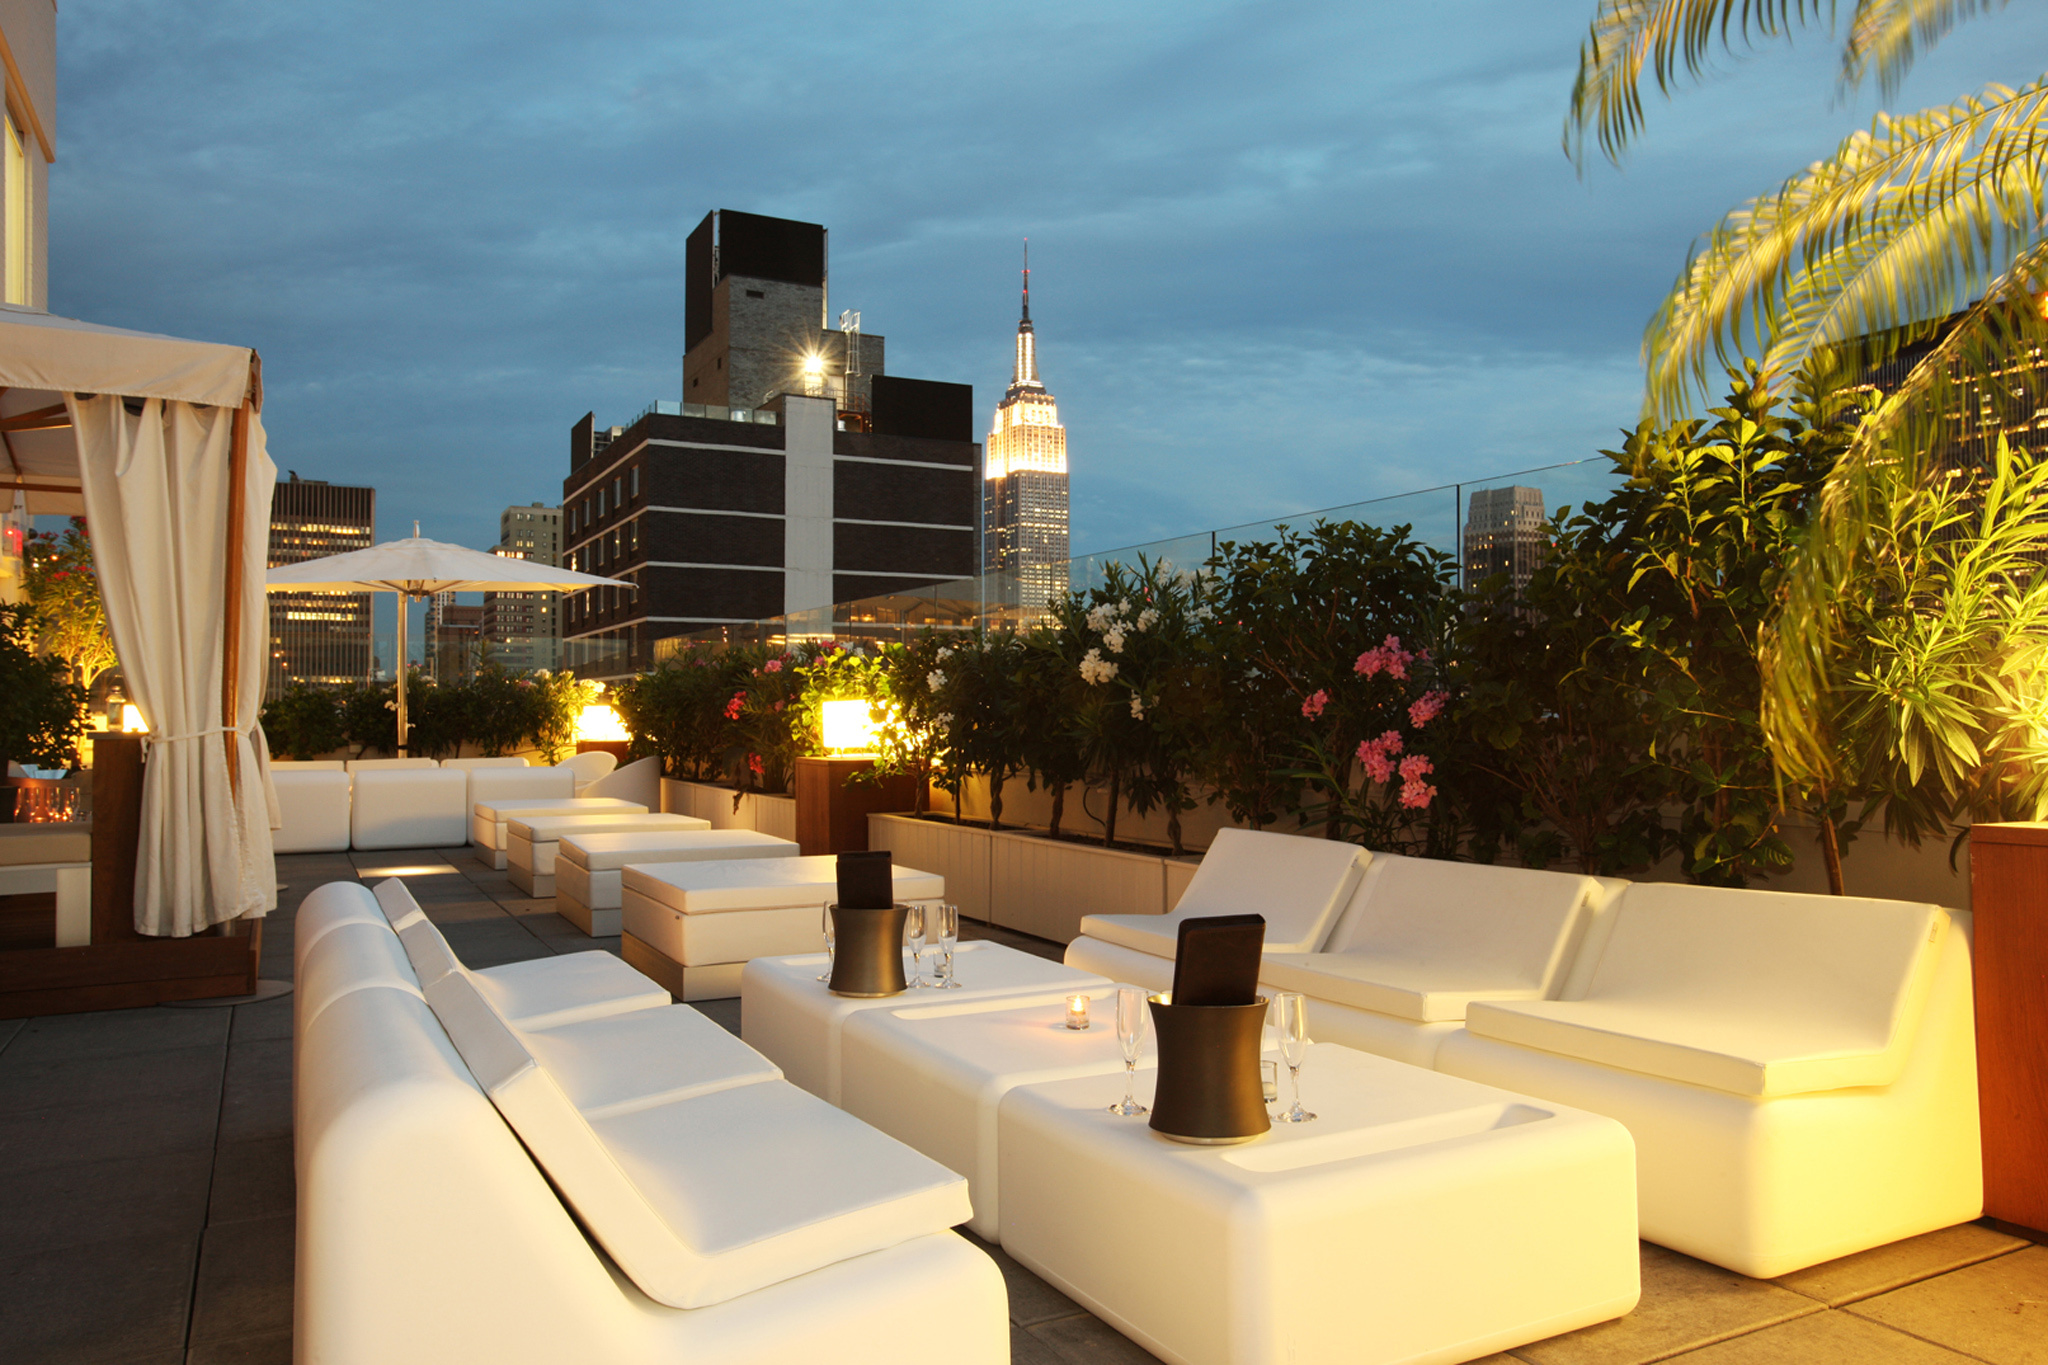 Things To Do On Nyc Rooftops From Bars To Movie Screenings